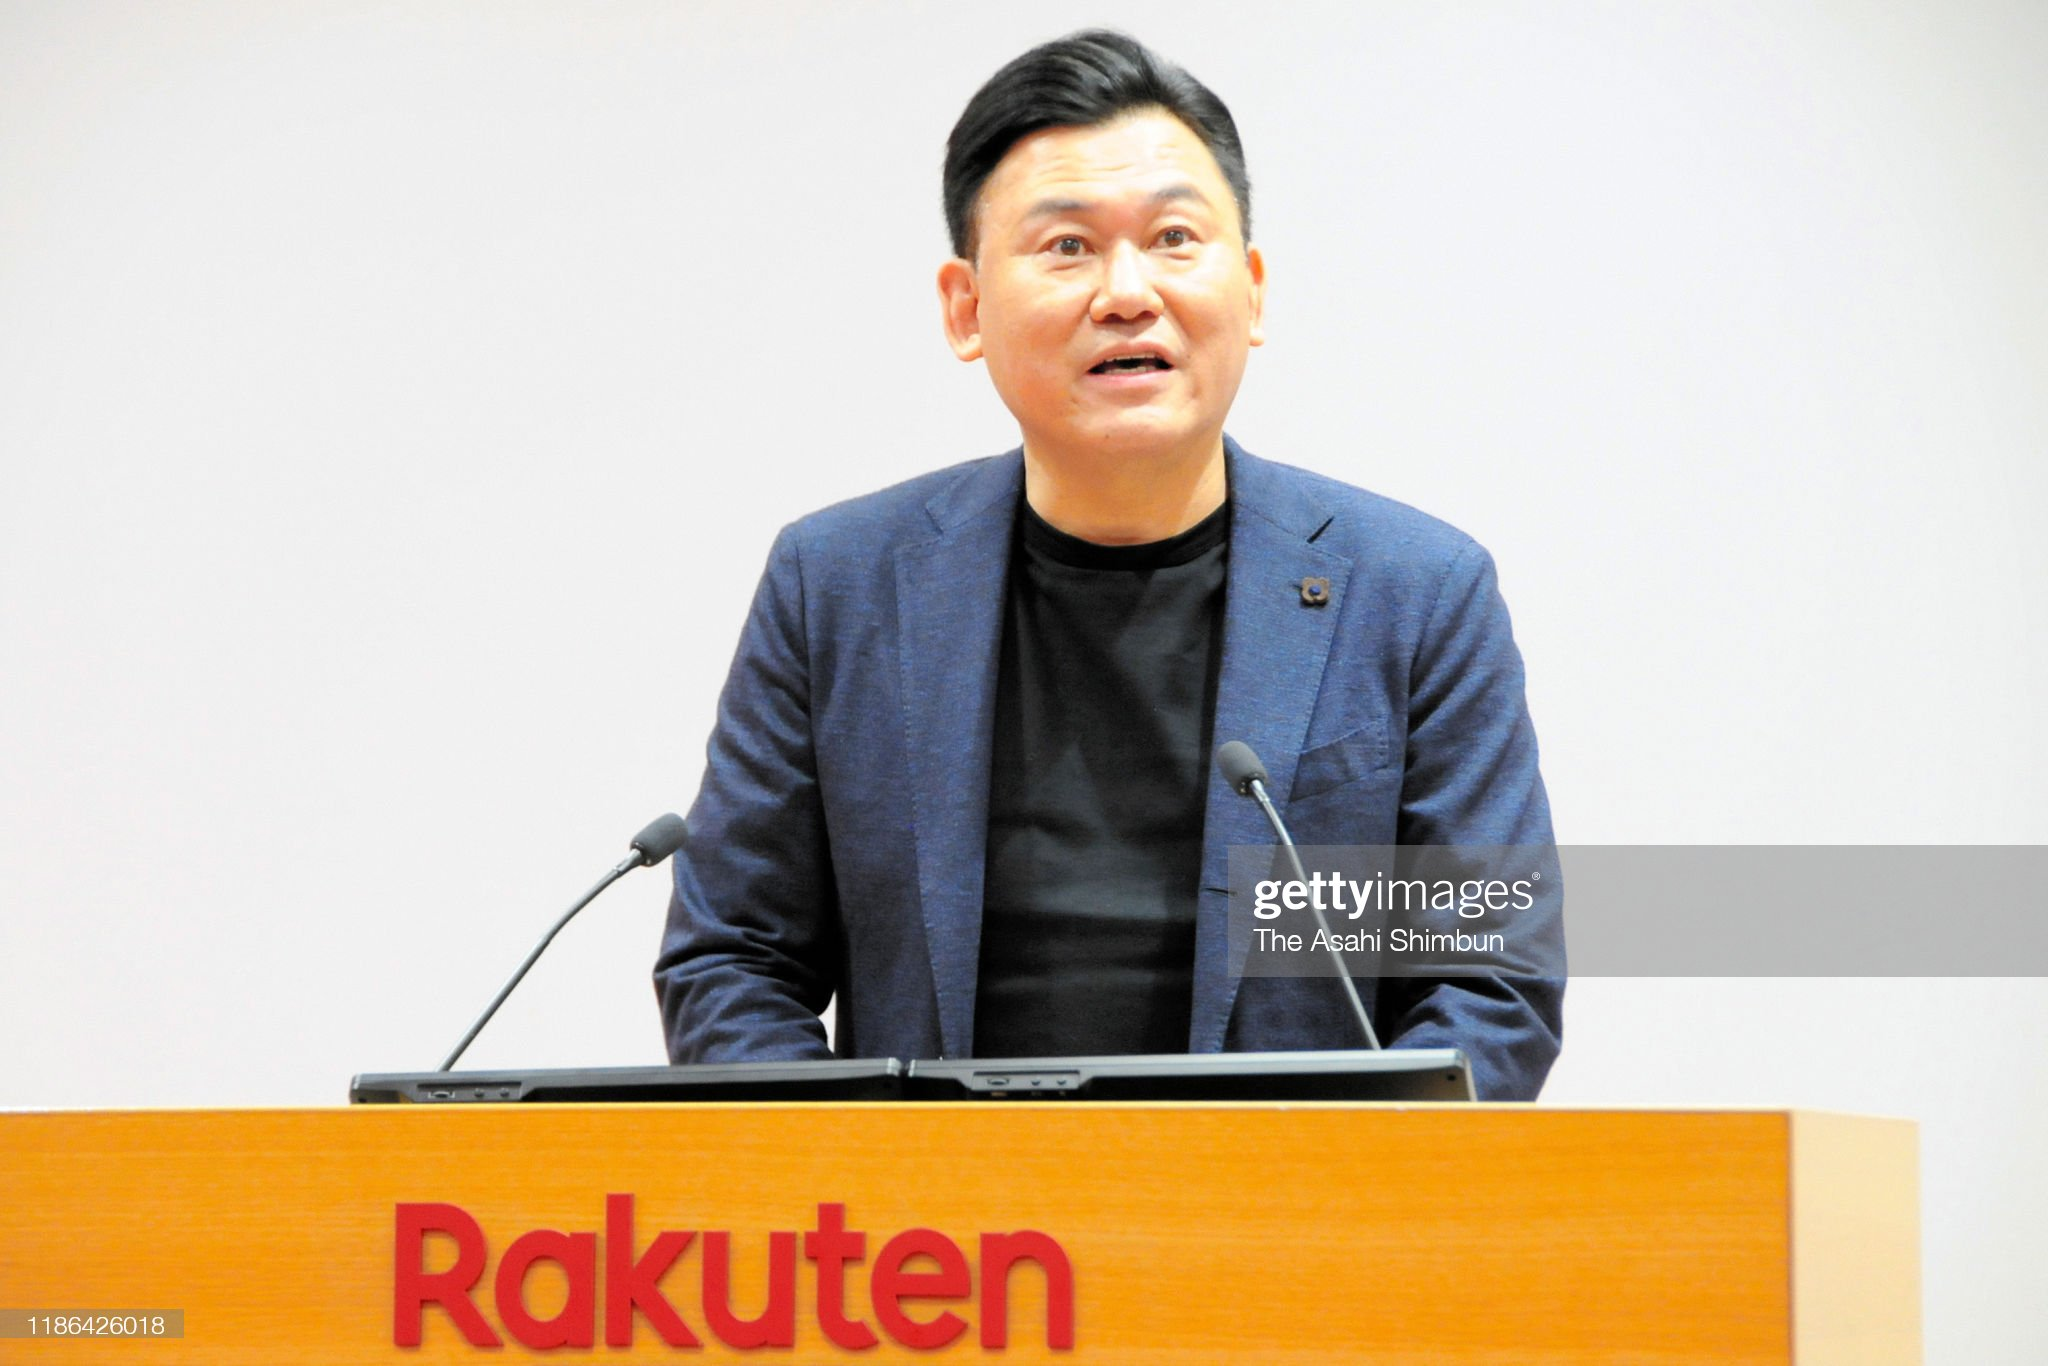 ¿Cuánto mide Hiroshi Mikitani? - Altura - Real height Rakuten-ceo-hiroshi-mikitani-speaks-during-a-press-conference-on-7-picture-id1186426018?s=2048x2048